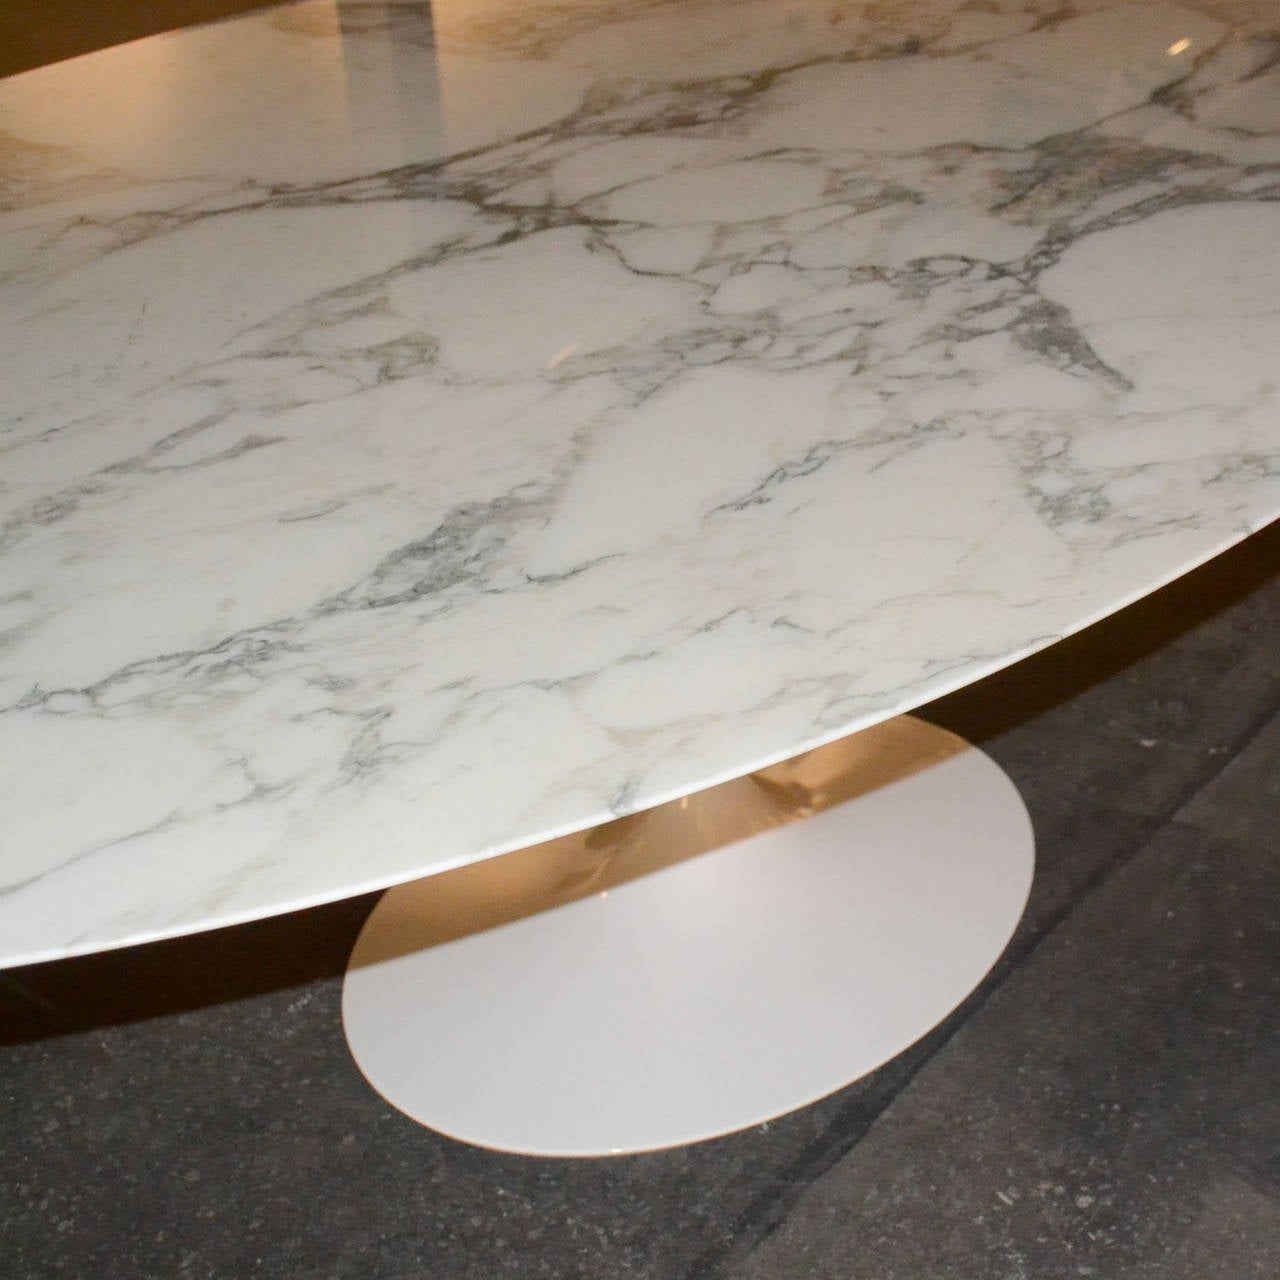 Saarinen Tulip Oval Dining Or Conference Table With Marble Top Image 4